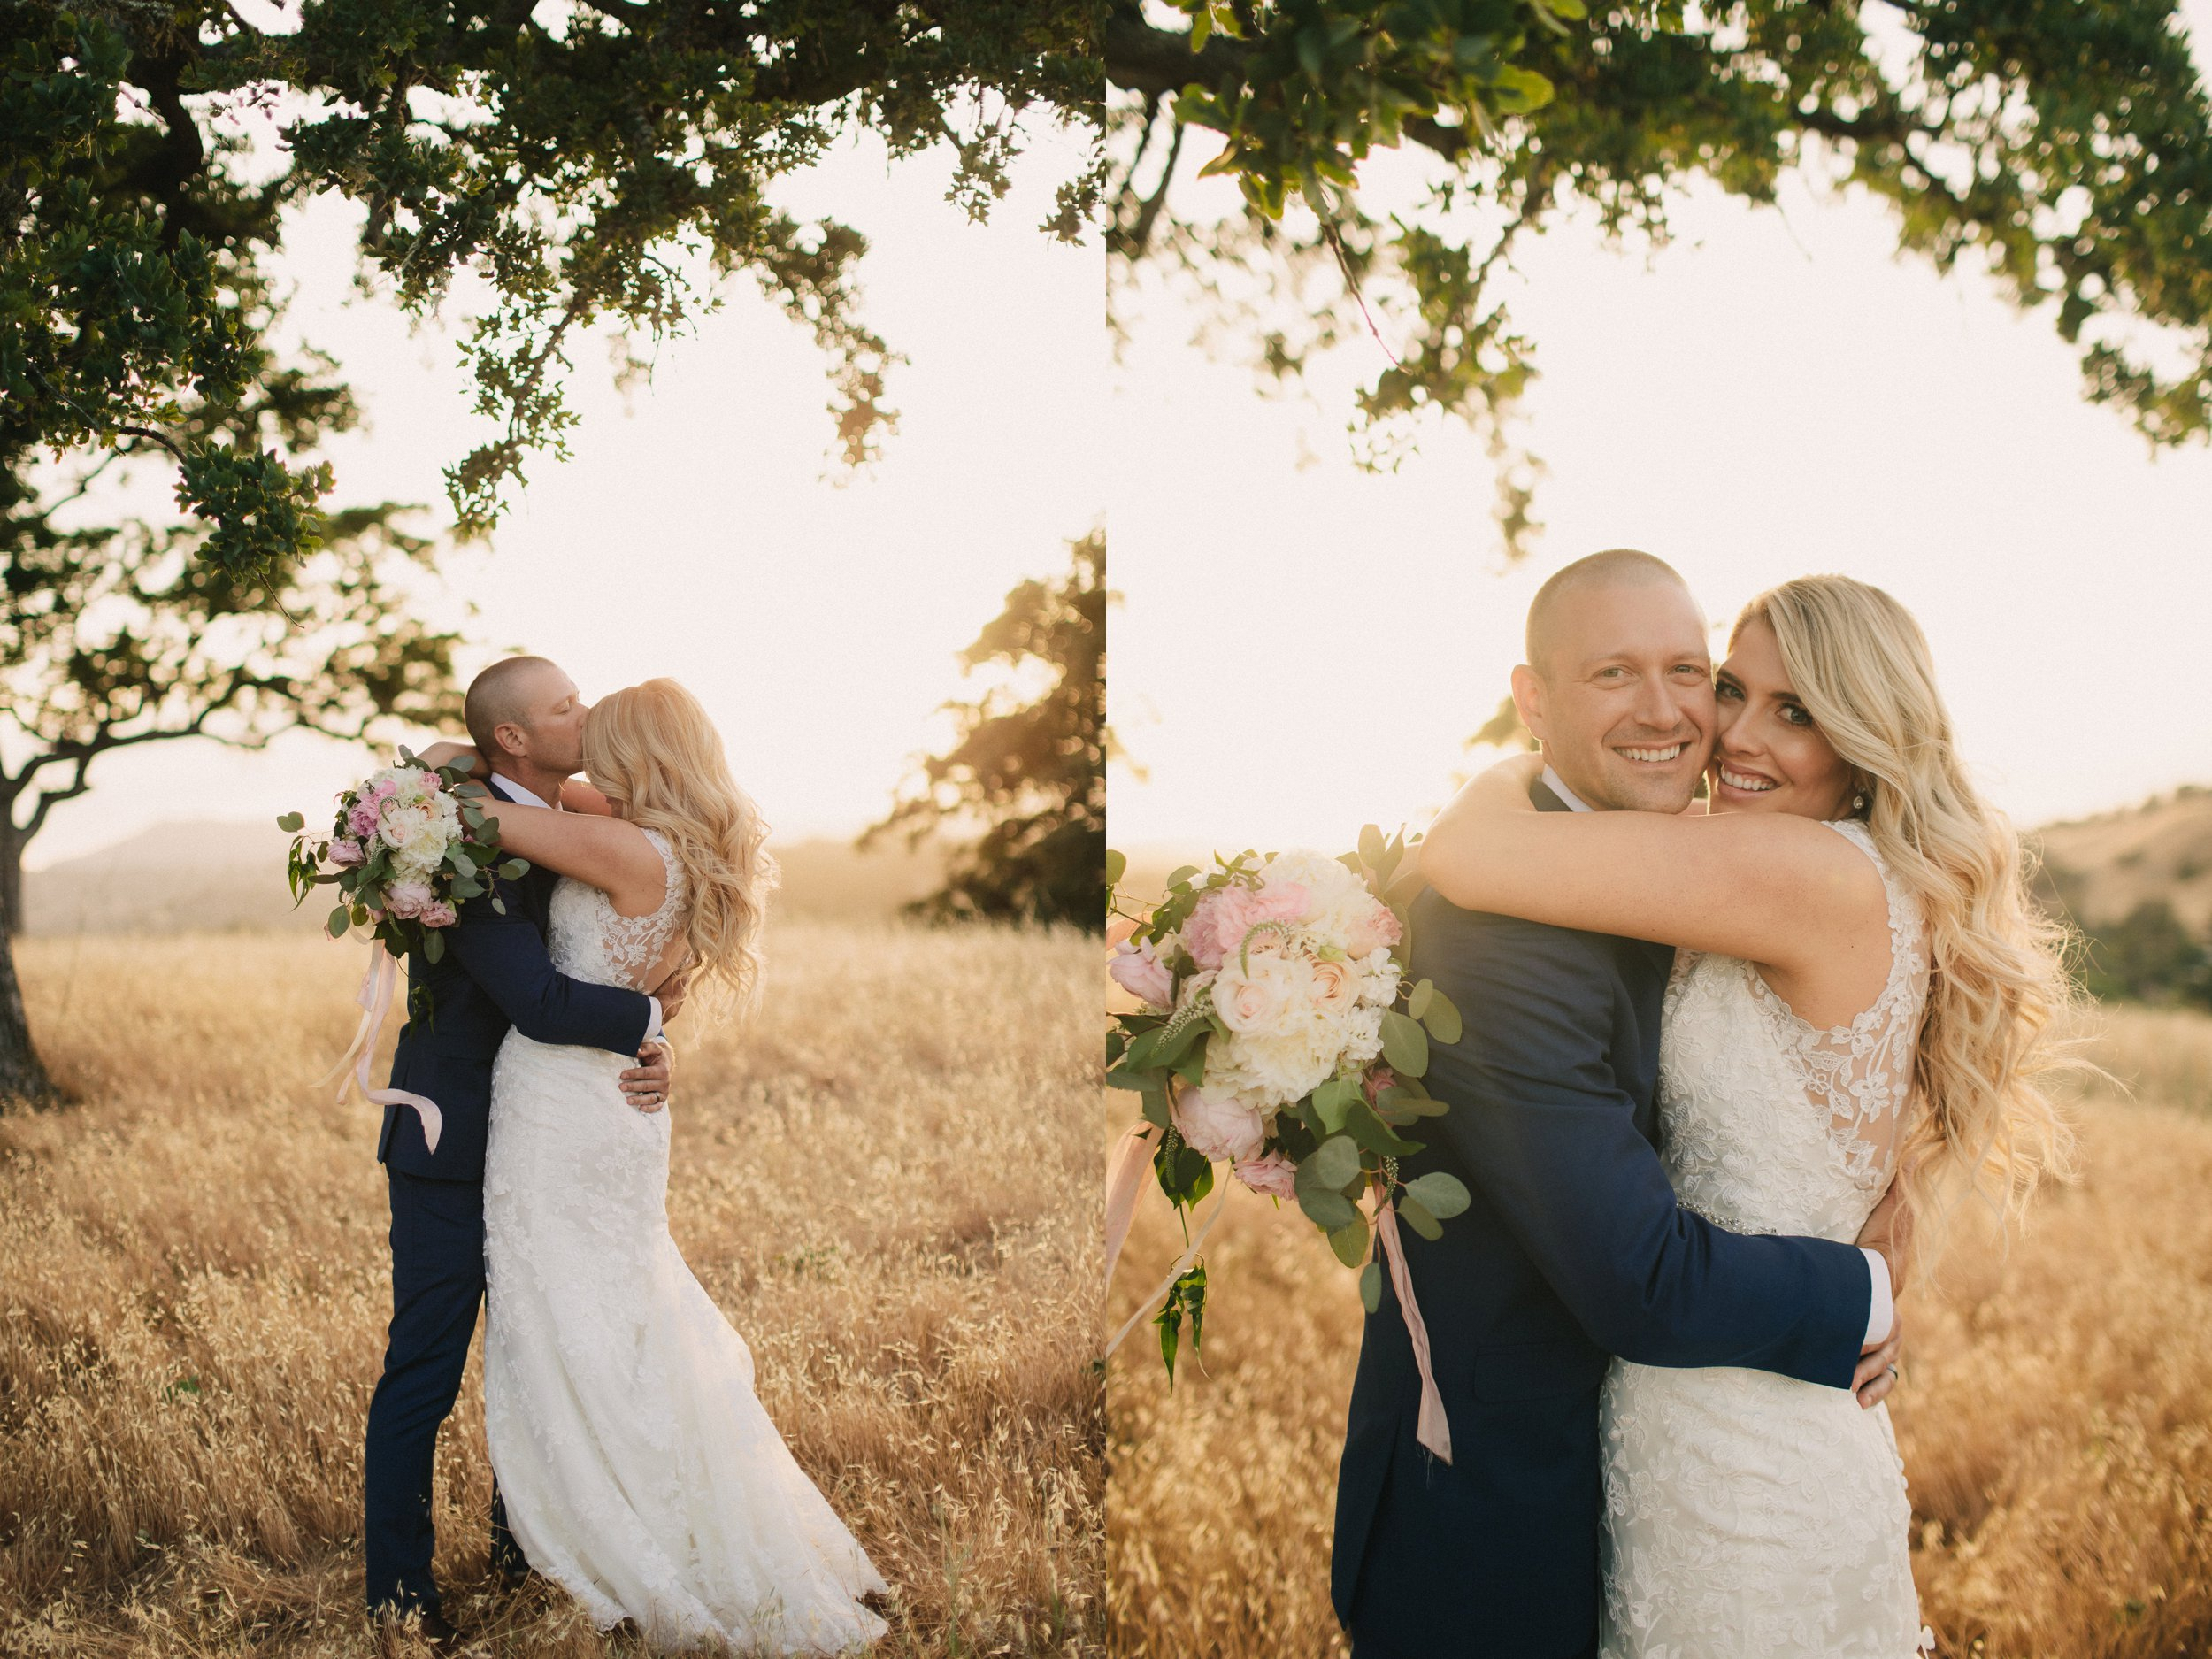 CaliforniaWedding|LindenCloverPhotography_0095.jpg